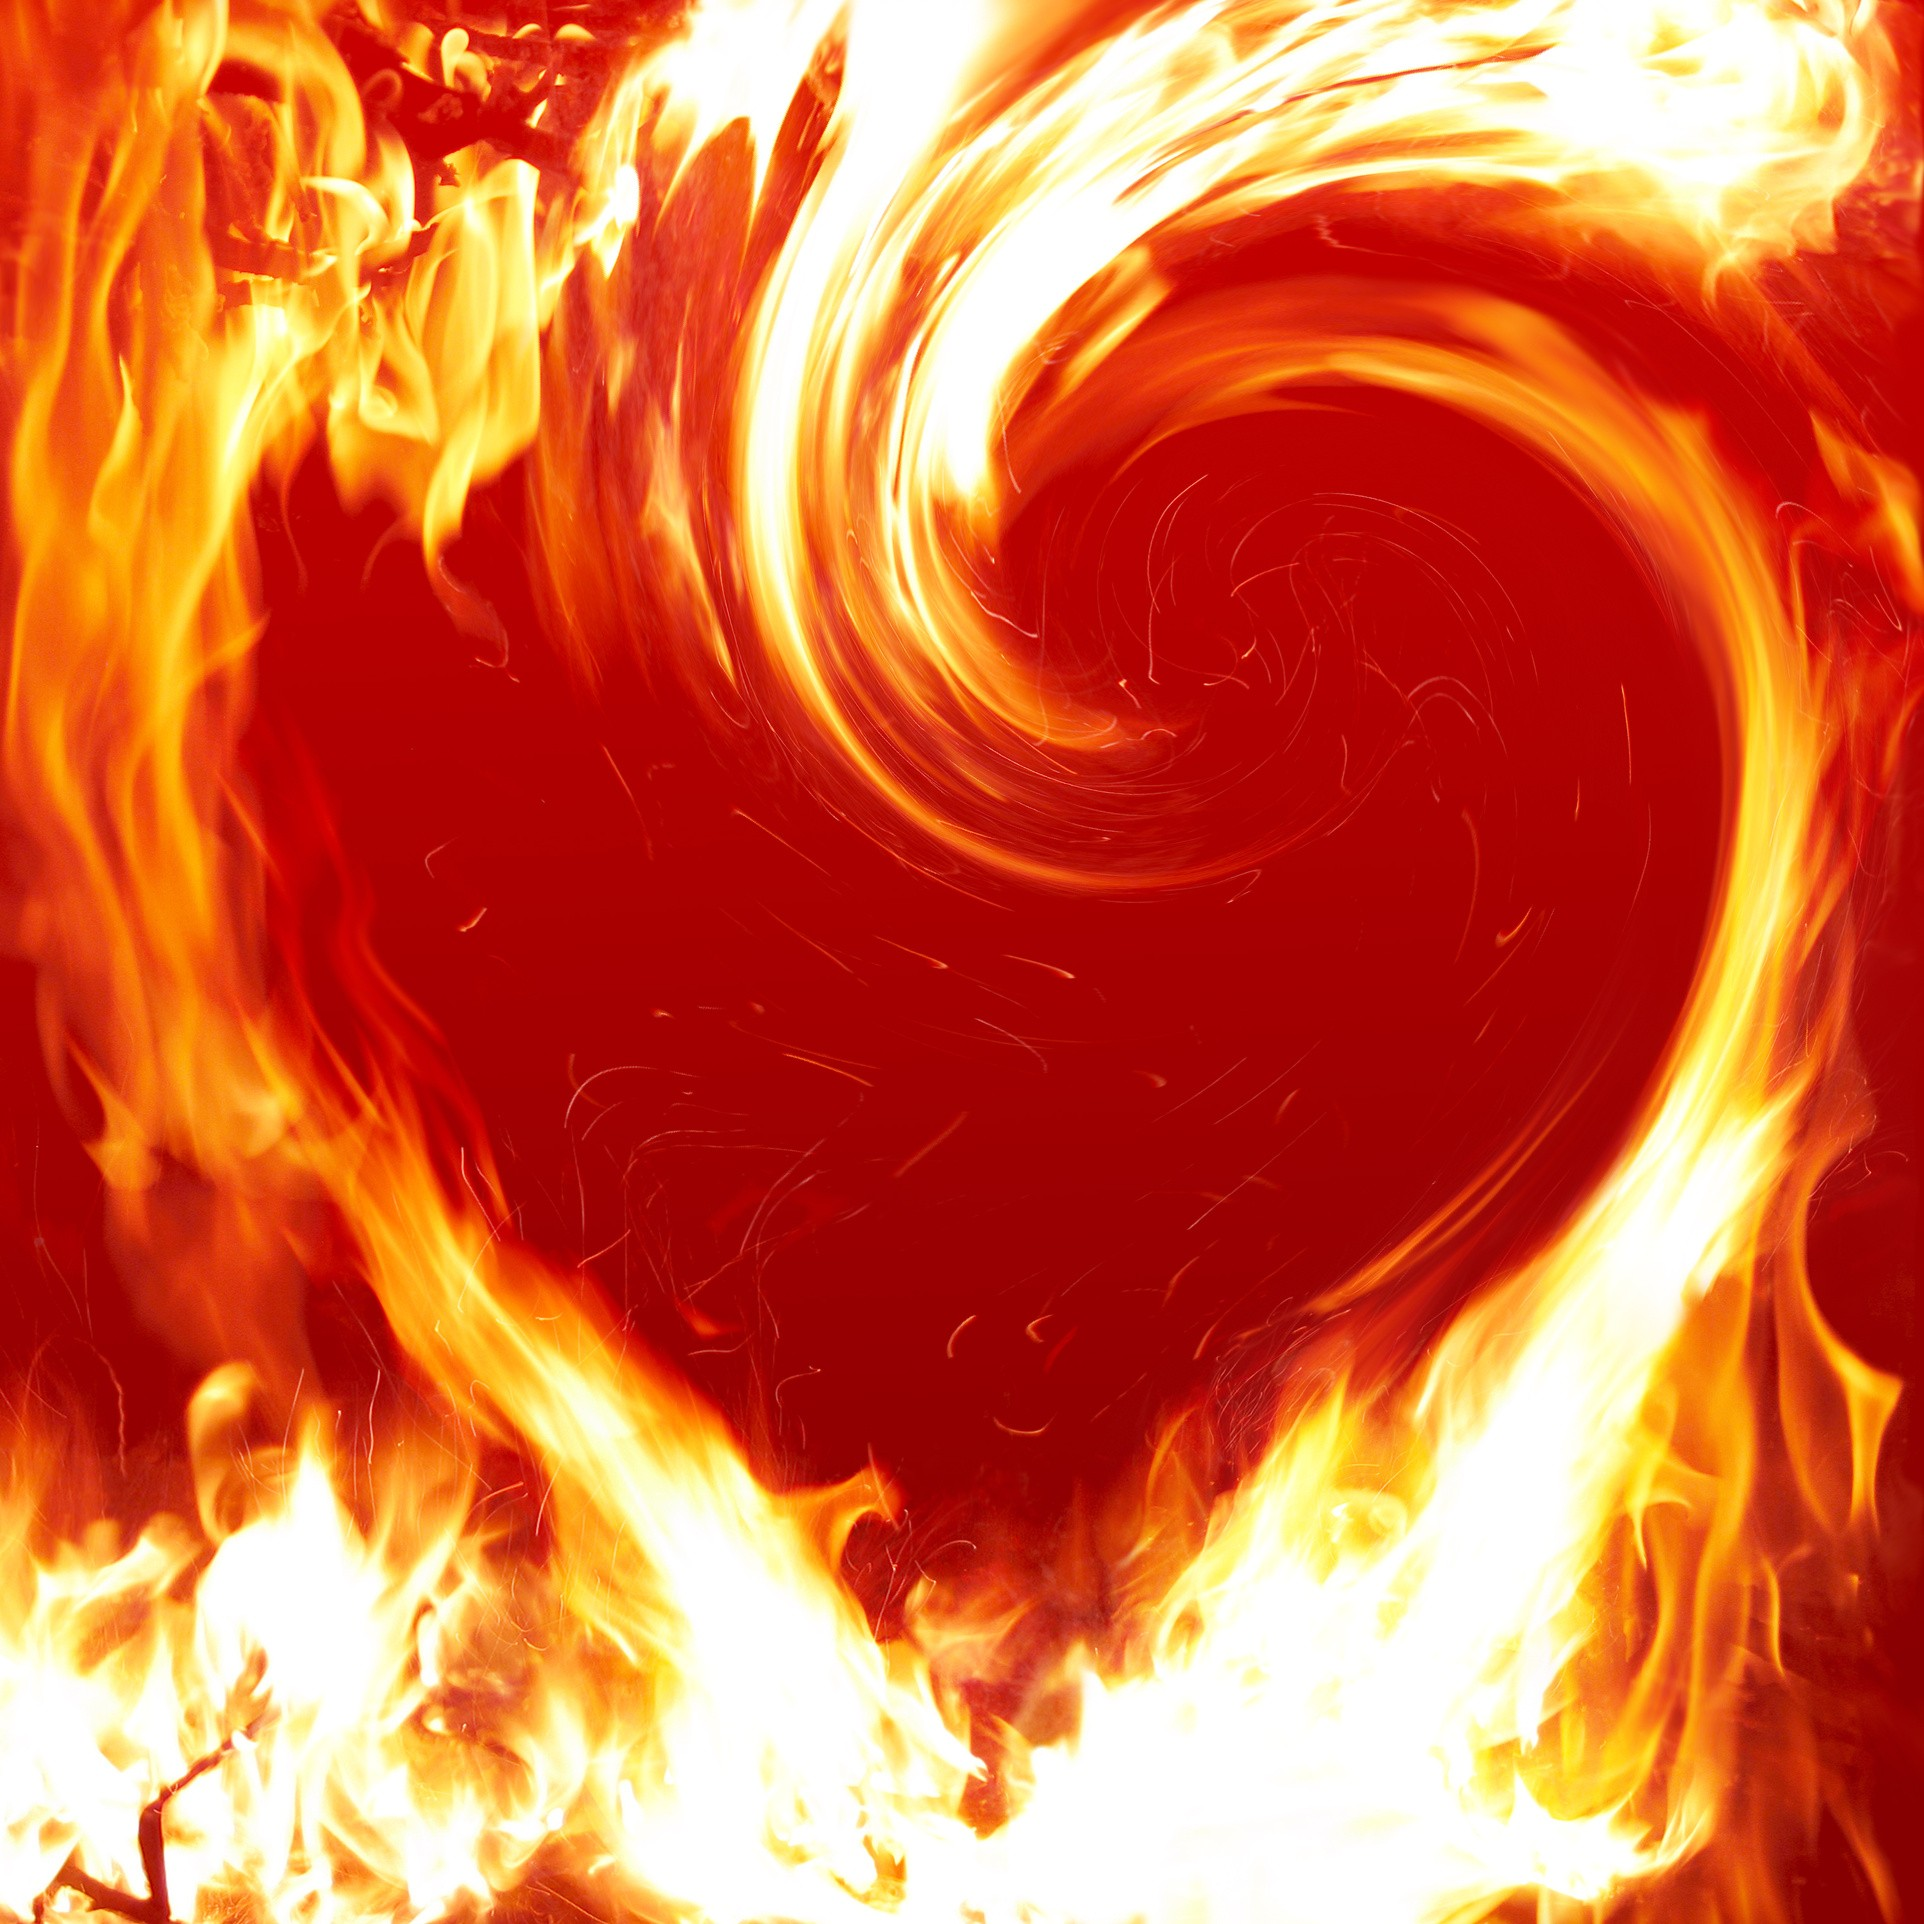 Flames background 50+